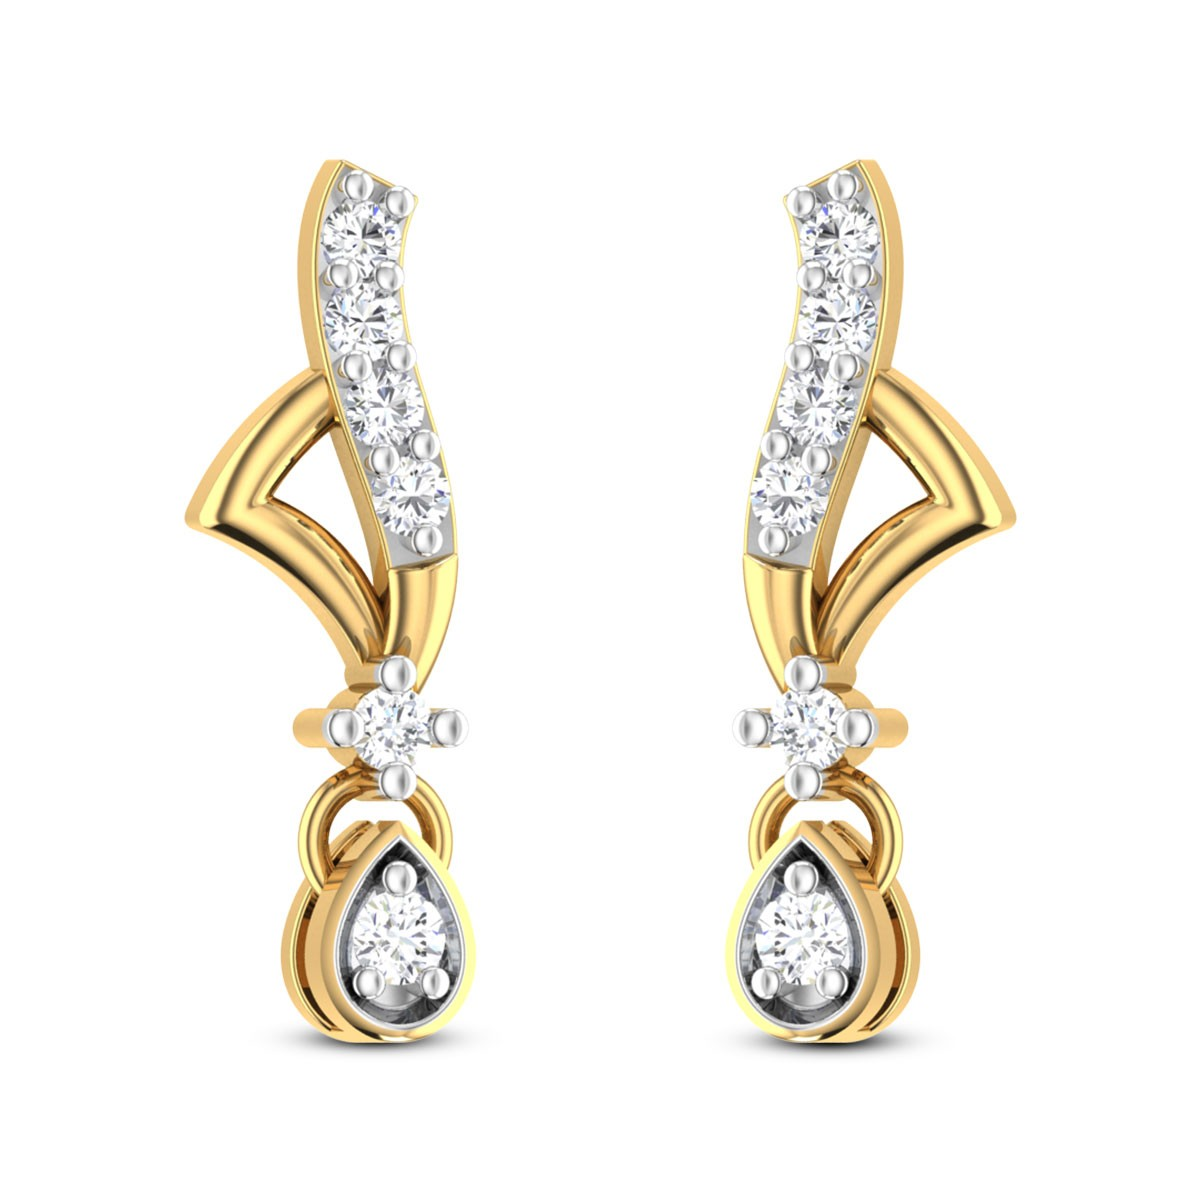 Marilla Diamond Earrings